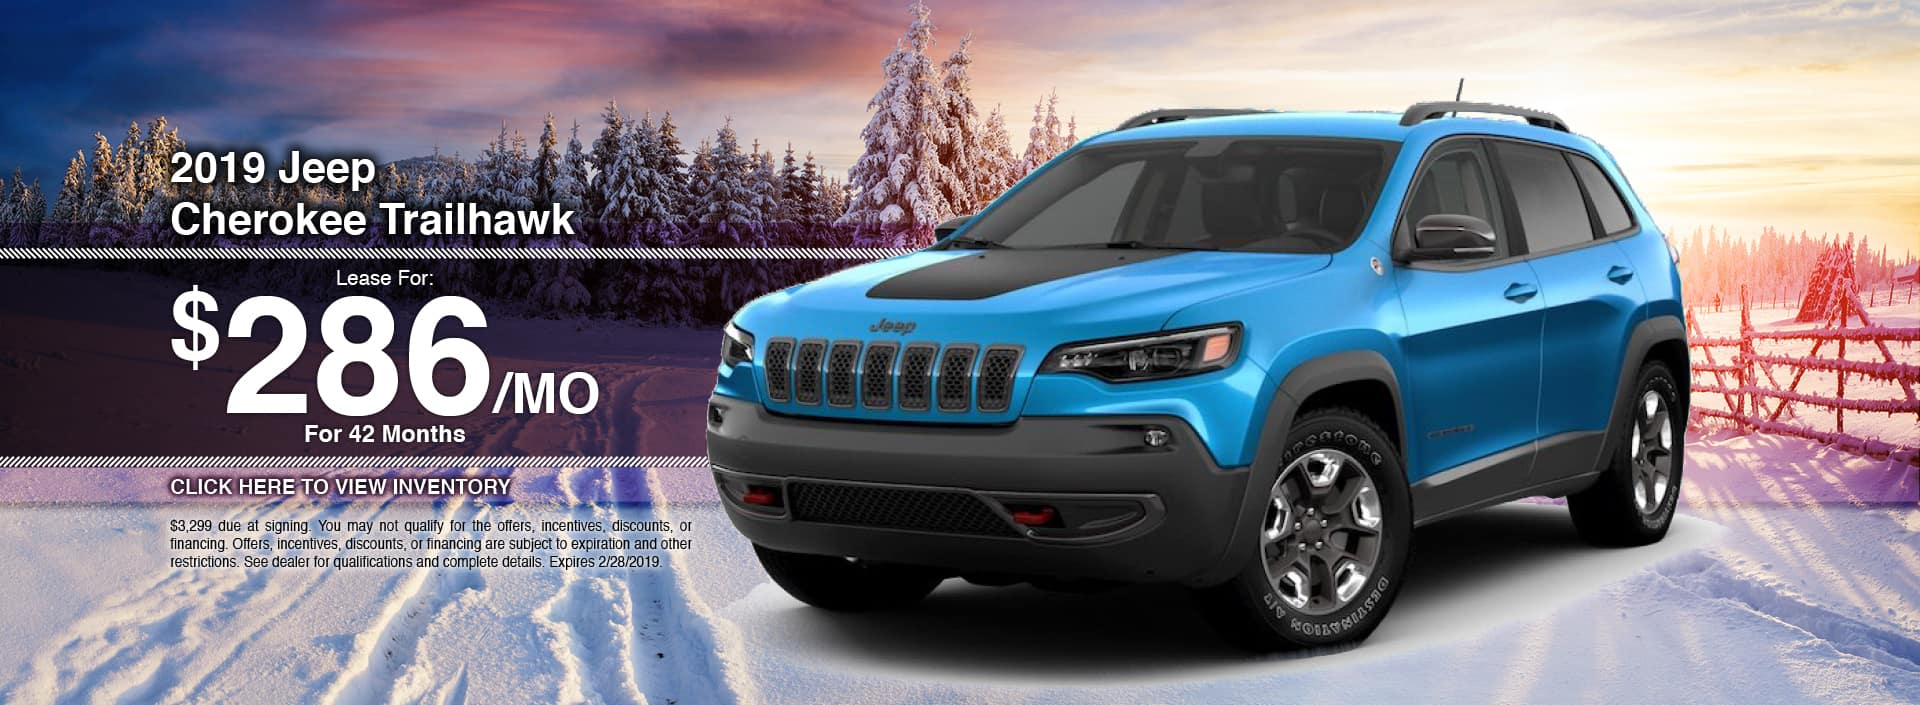 New 2019 Jeep Cherokee for Sale in Waseca, MN